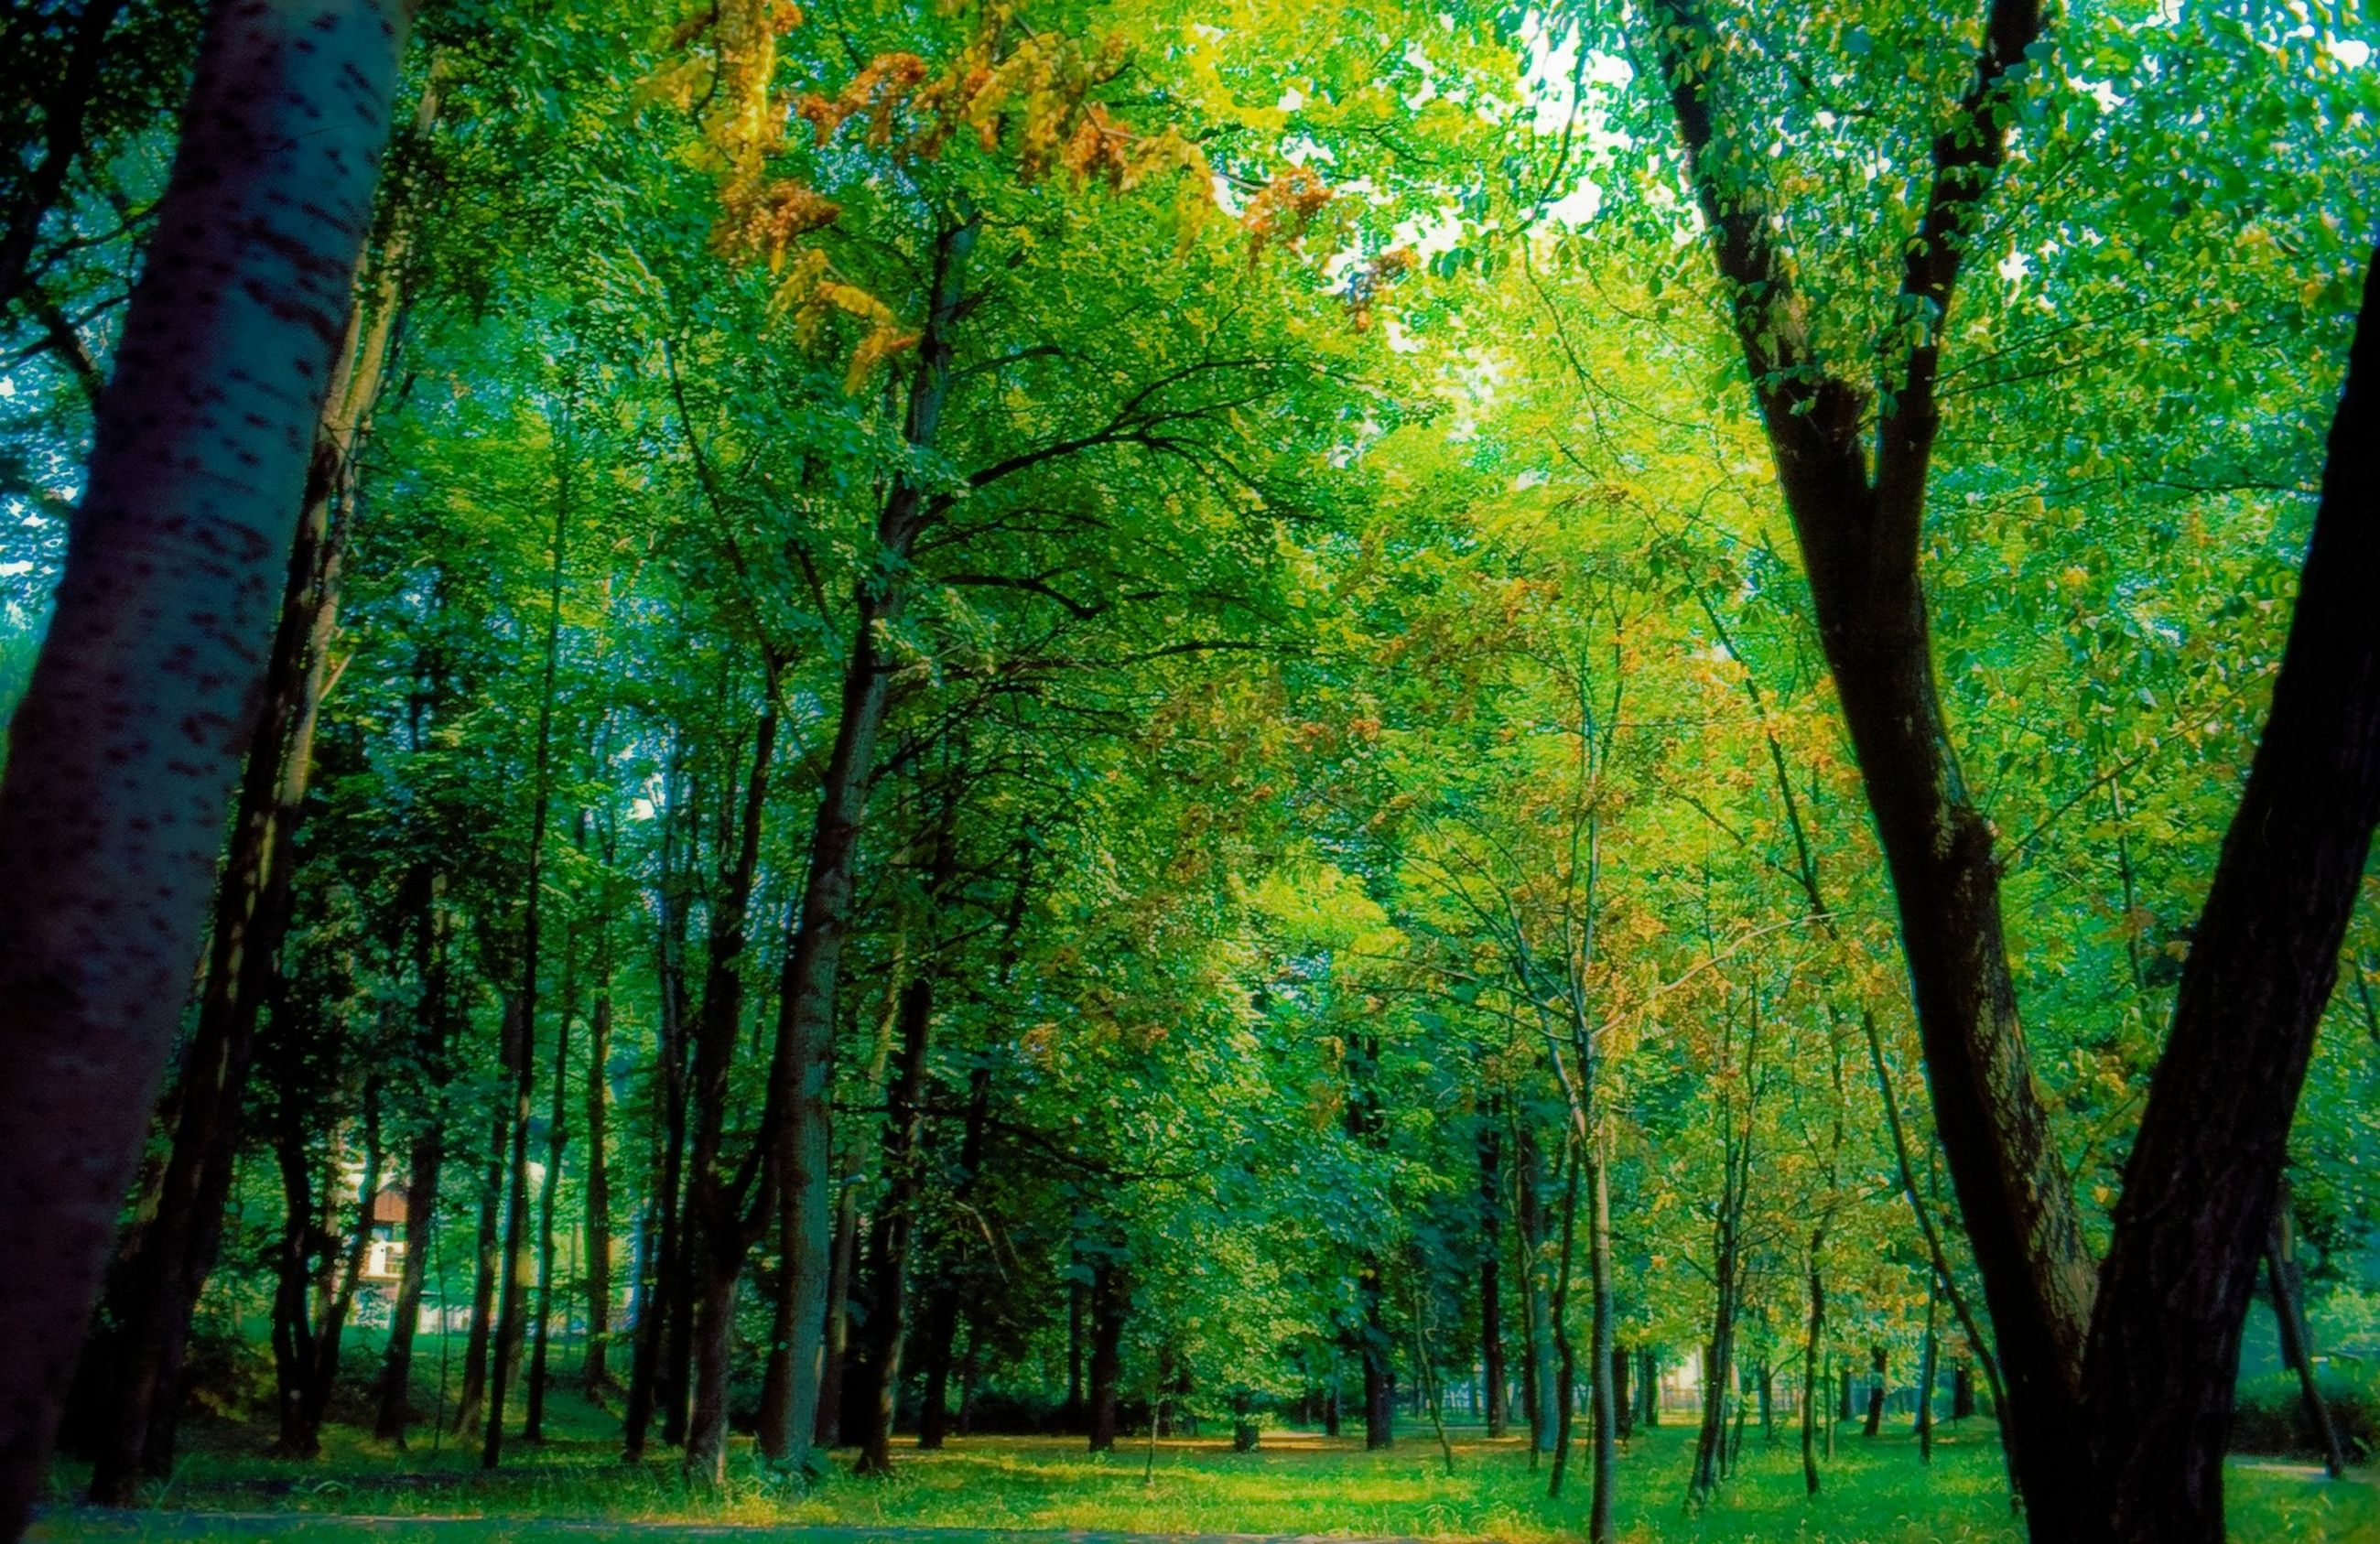 tree, tree trunk, growth, green color, tranquility, nature, beauty in nature, branch, tranquil scene, scenics, forest, lush foliage, sunlight, green, woodland, park - man made space, landscape, day, idyllic, no people